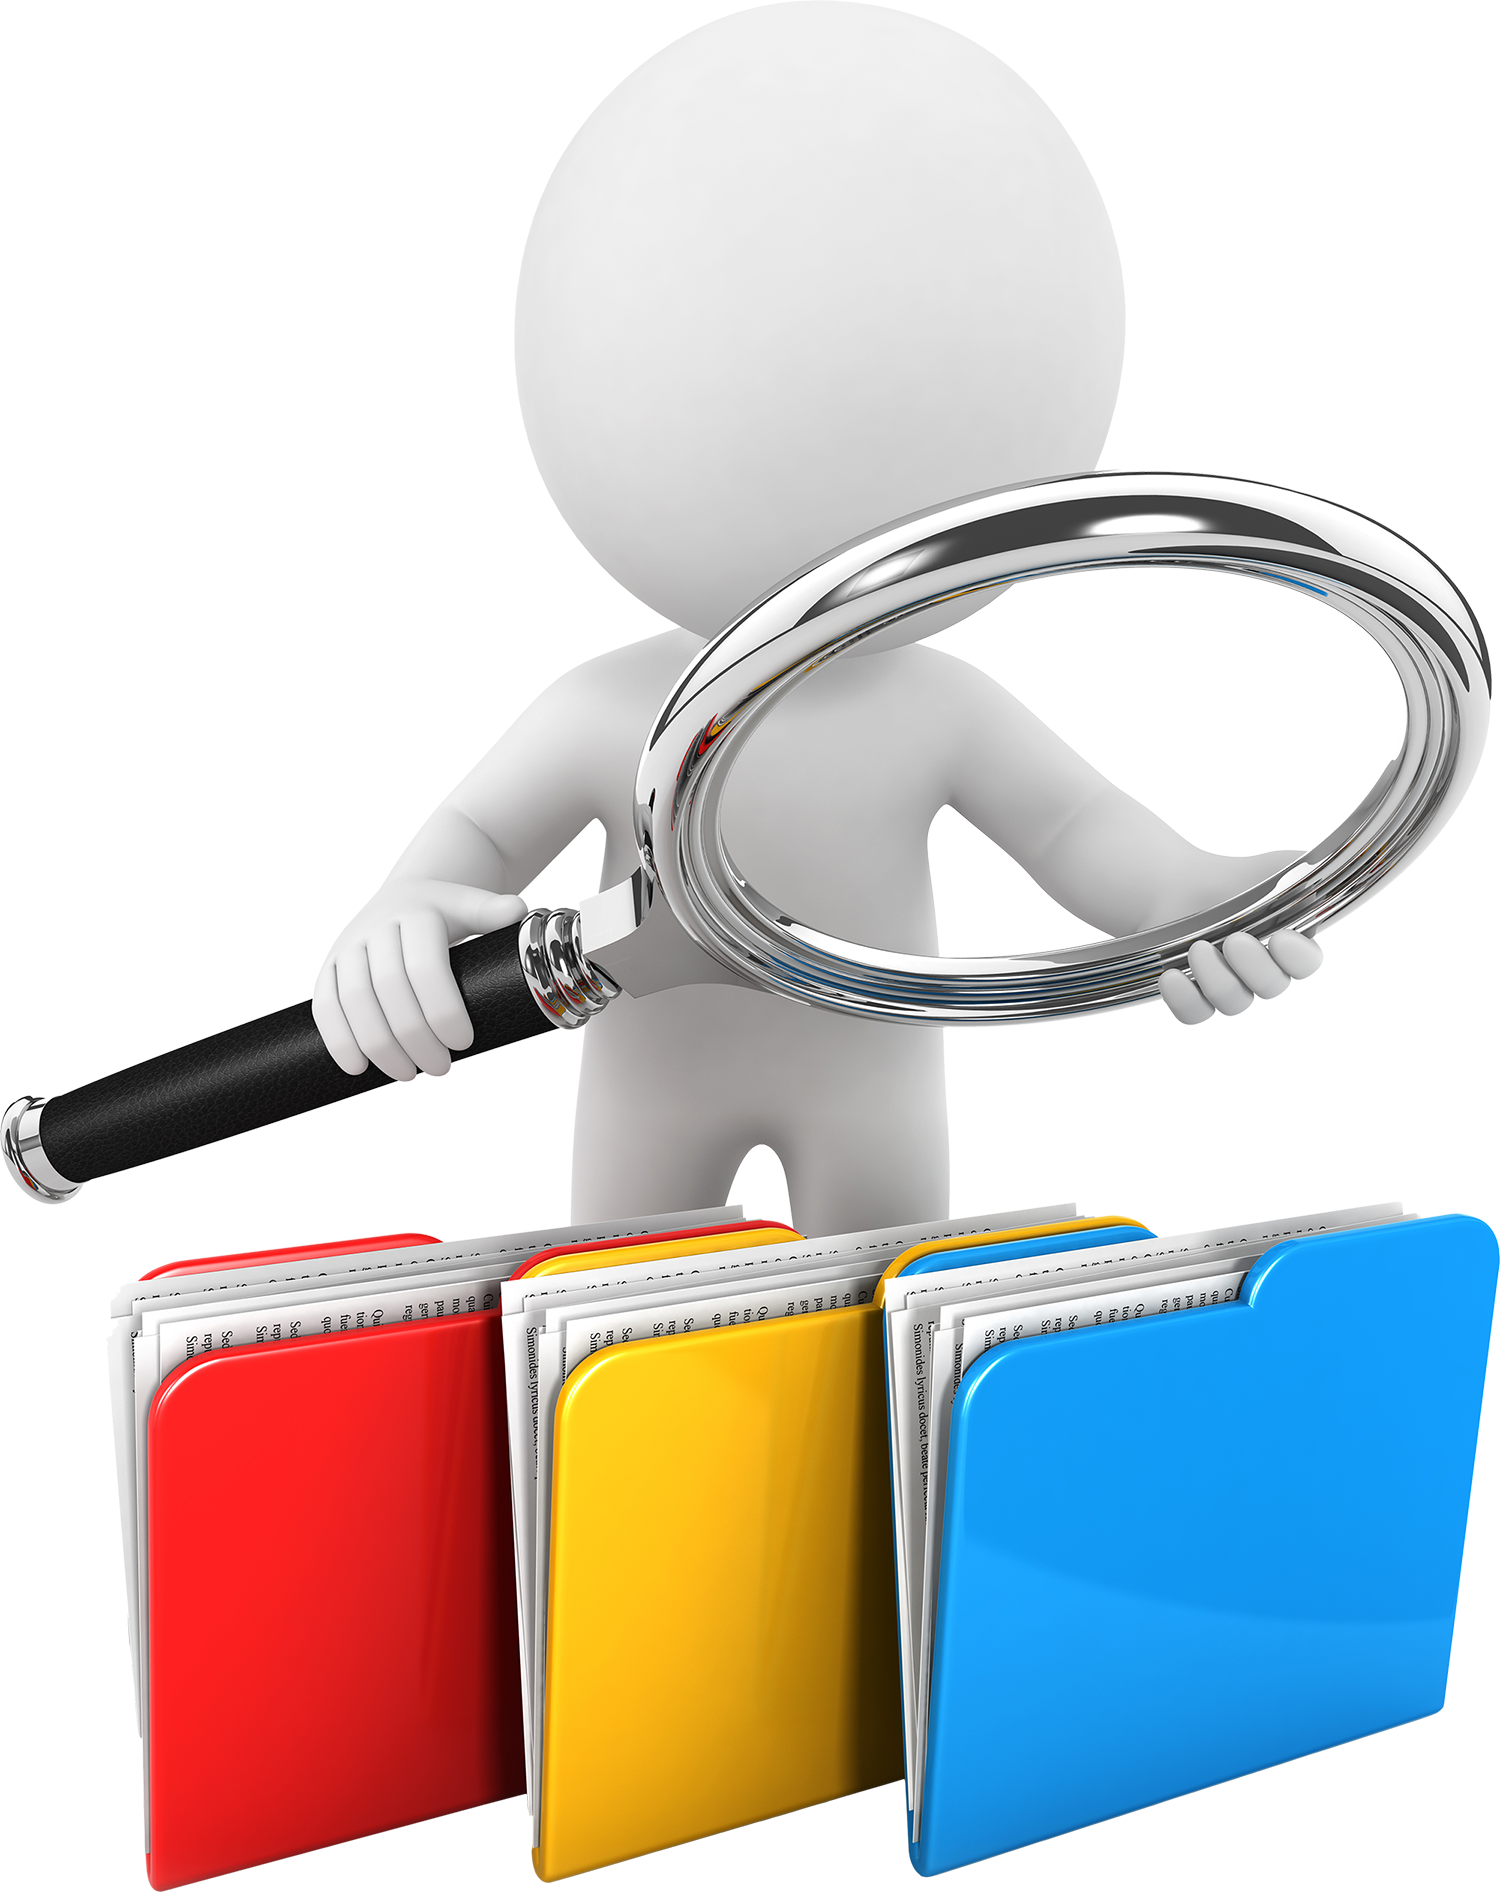 Report clipart auditor. Audit requirements for llp